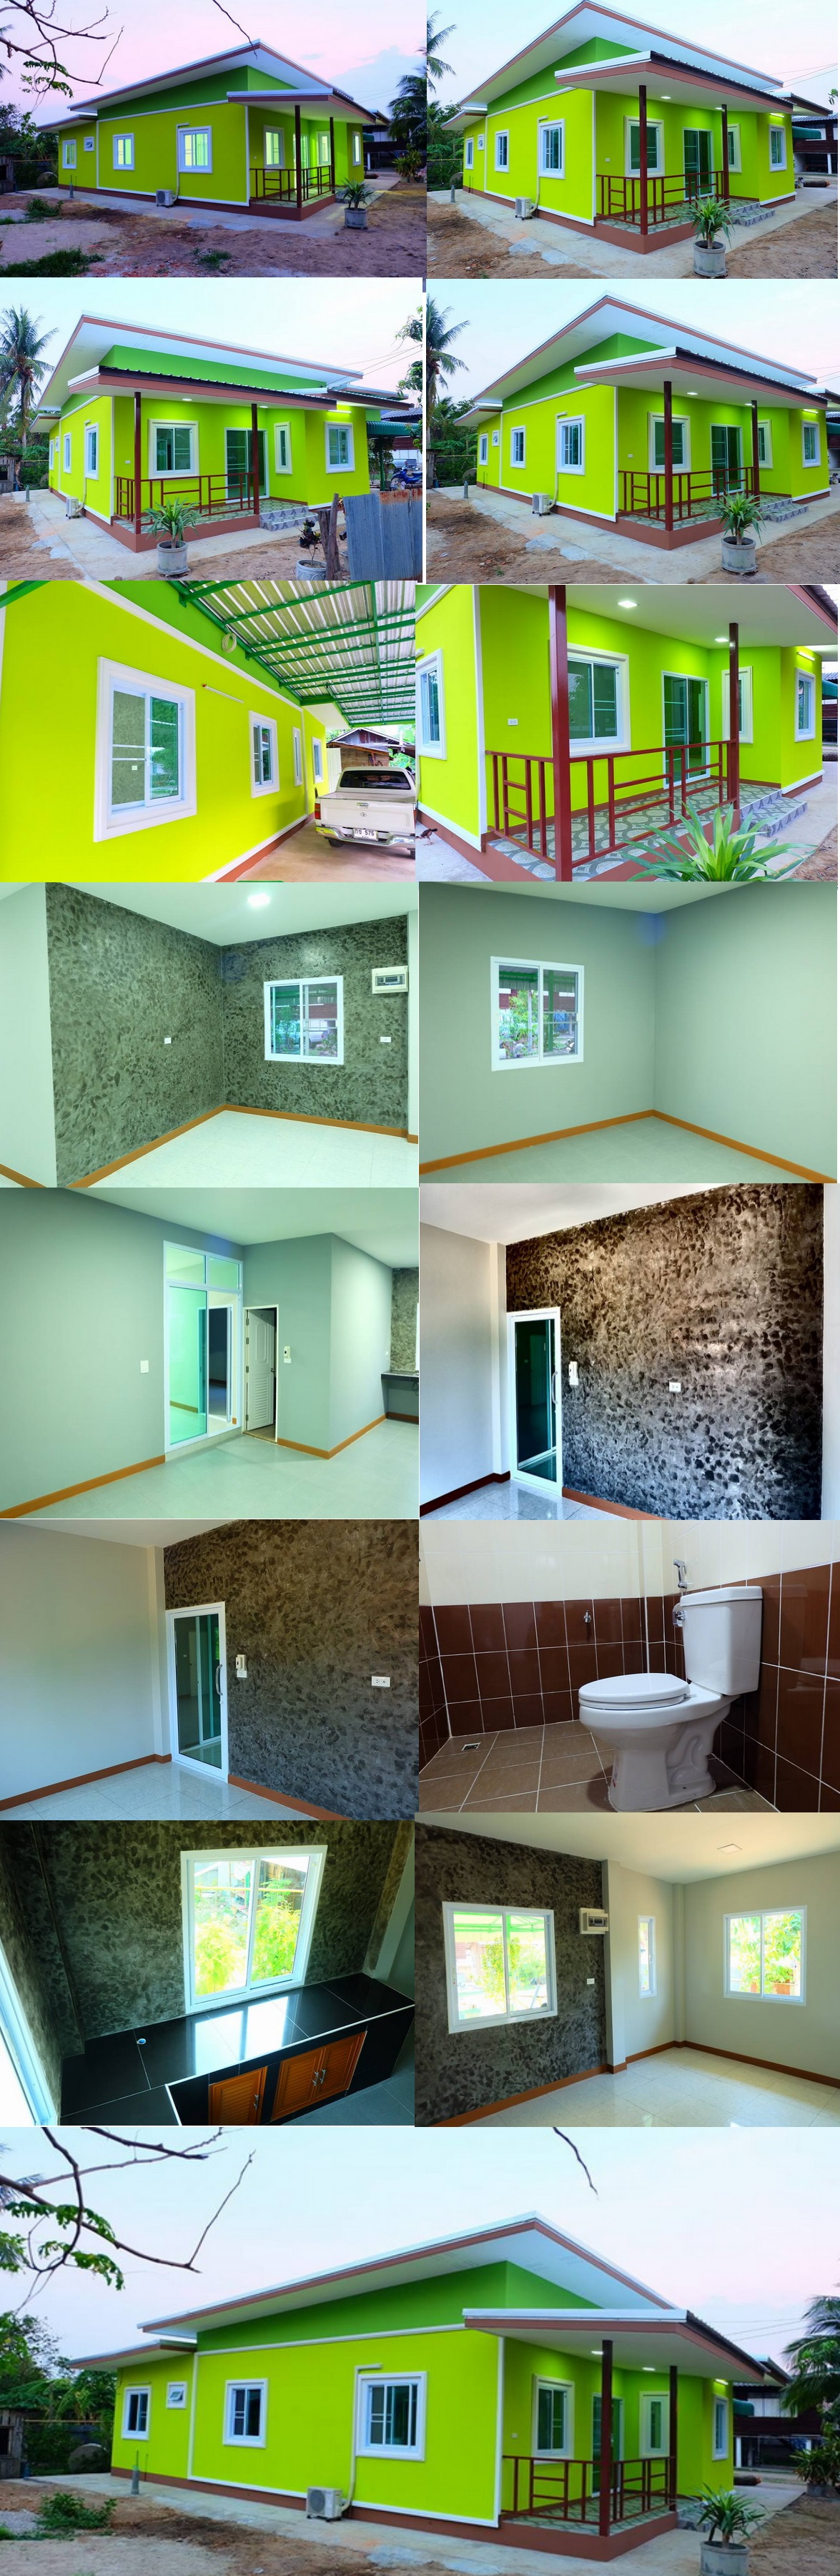 Small house design with interiors decoration